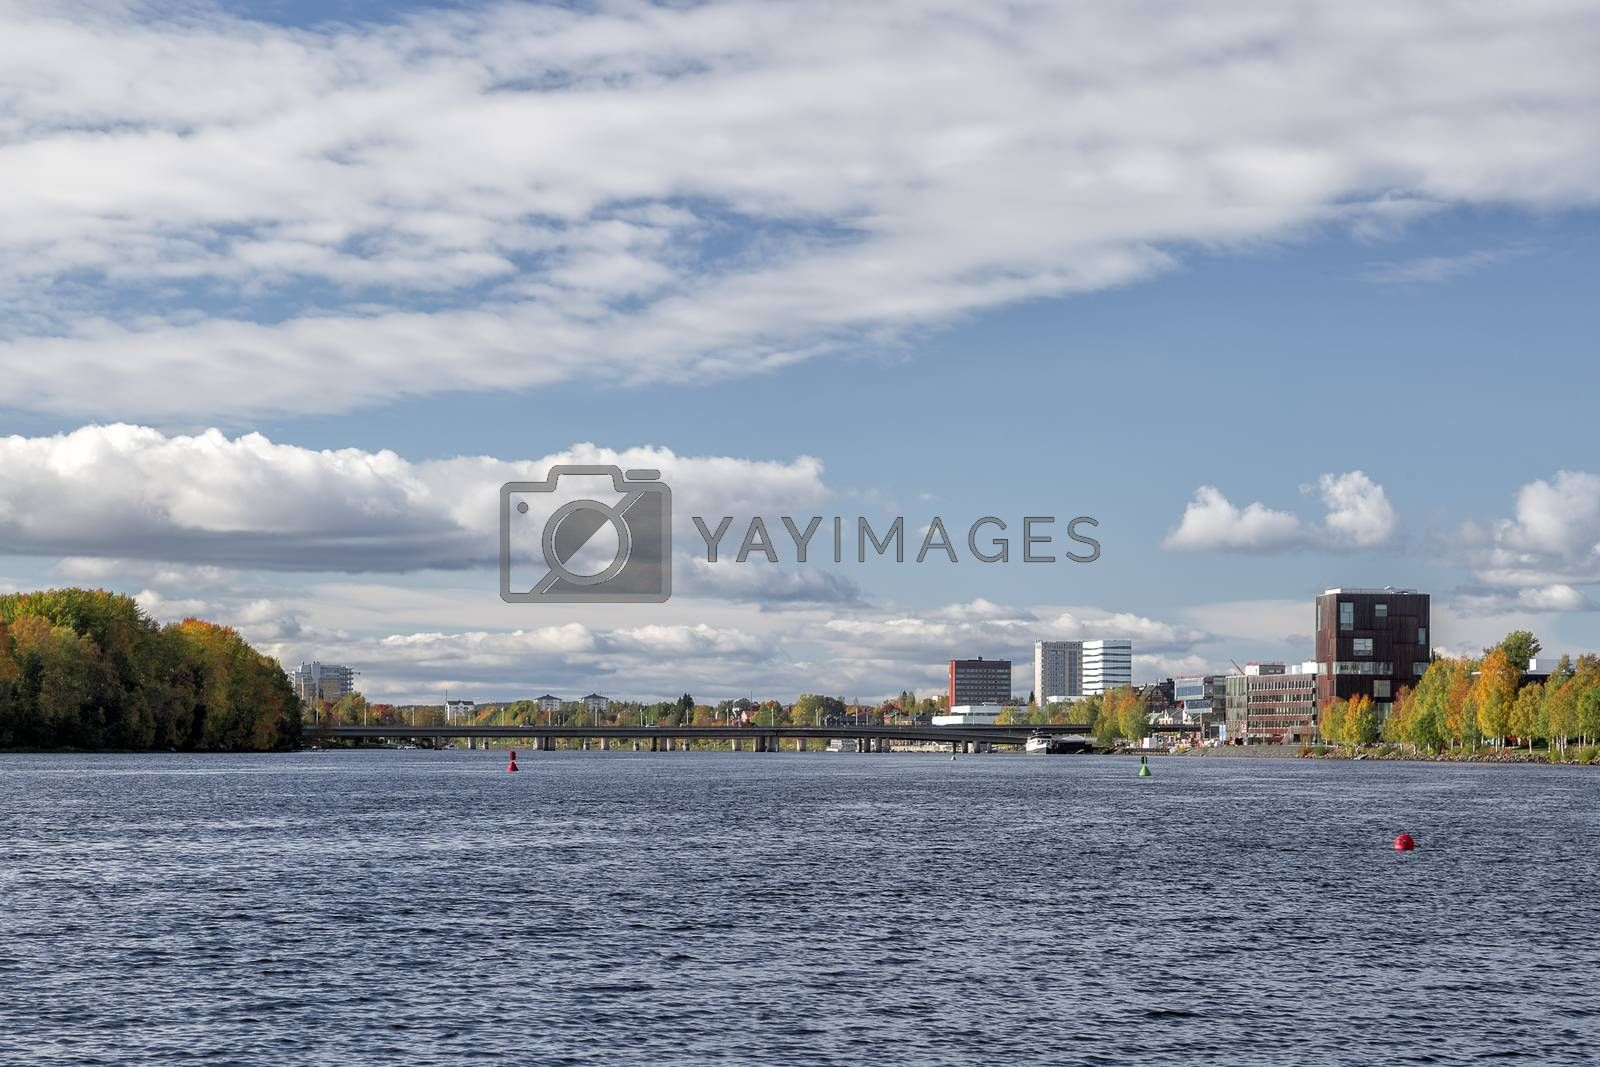 Downtown Umeå, Sweden in Fall with a partly cloudy sky.